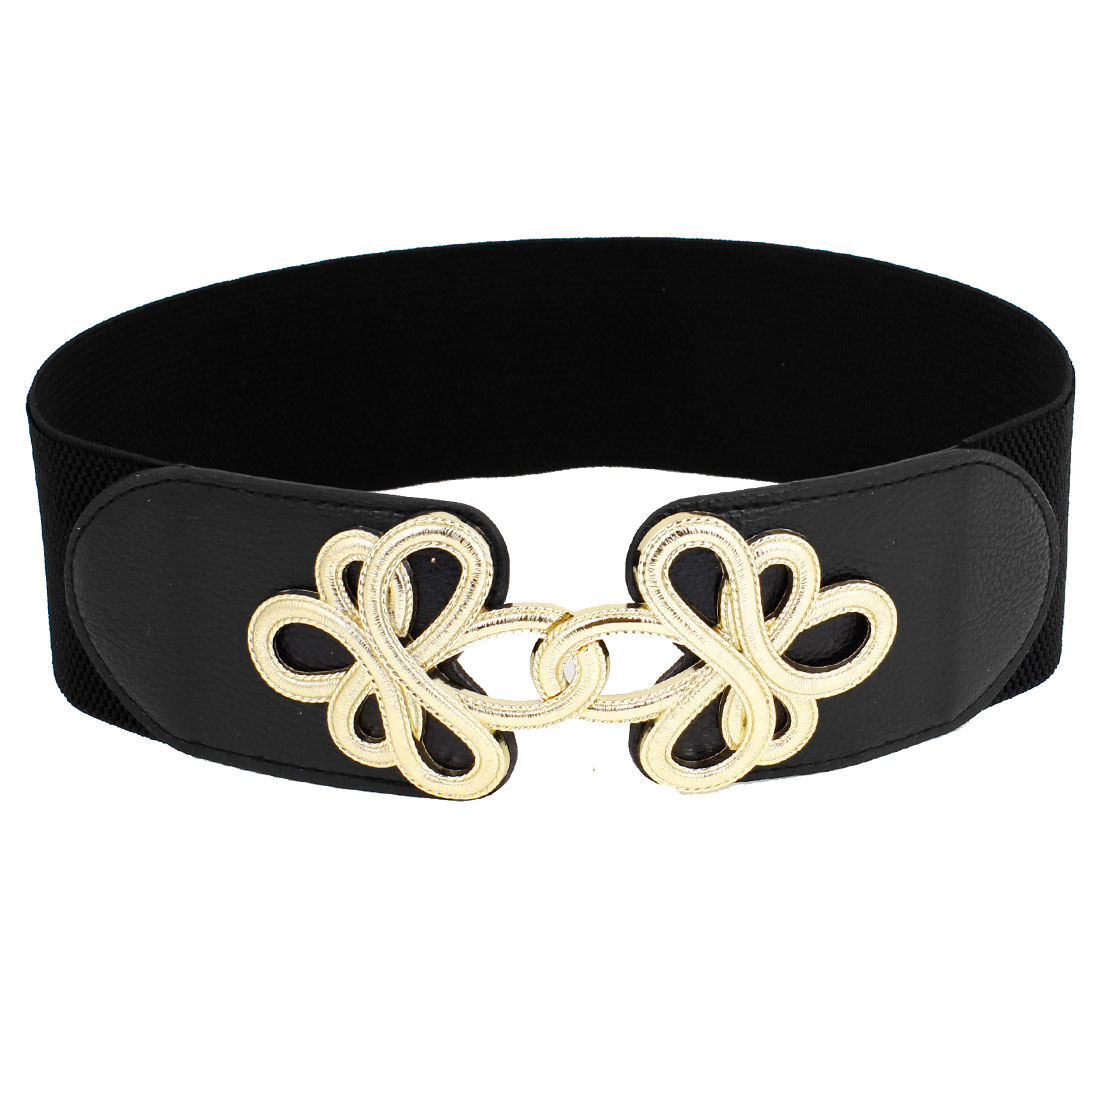 Metal Flower Interlock Buckle Elastic Fabric Waist Cinch Belt Black for Women